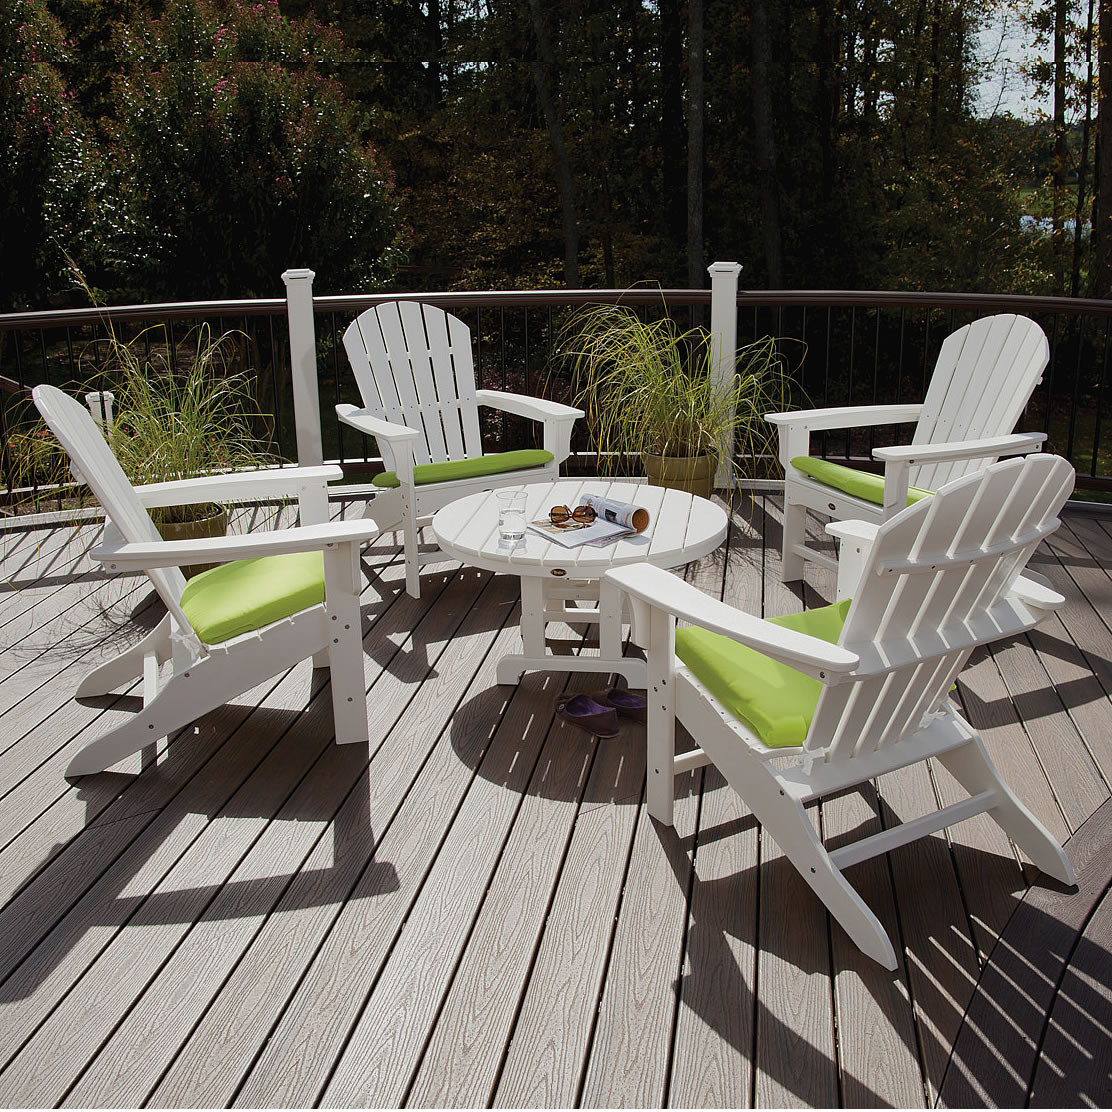 Trex Cape Cod Adirondack 5 Pc Conversation Group Trex Outdoor Furniture Adirondack Chairs Trex Outdoor Furniture Collections